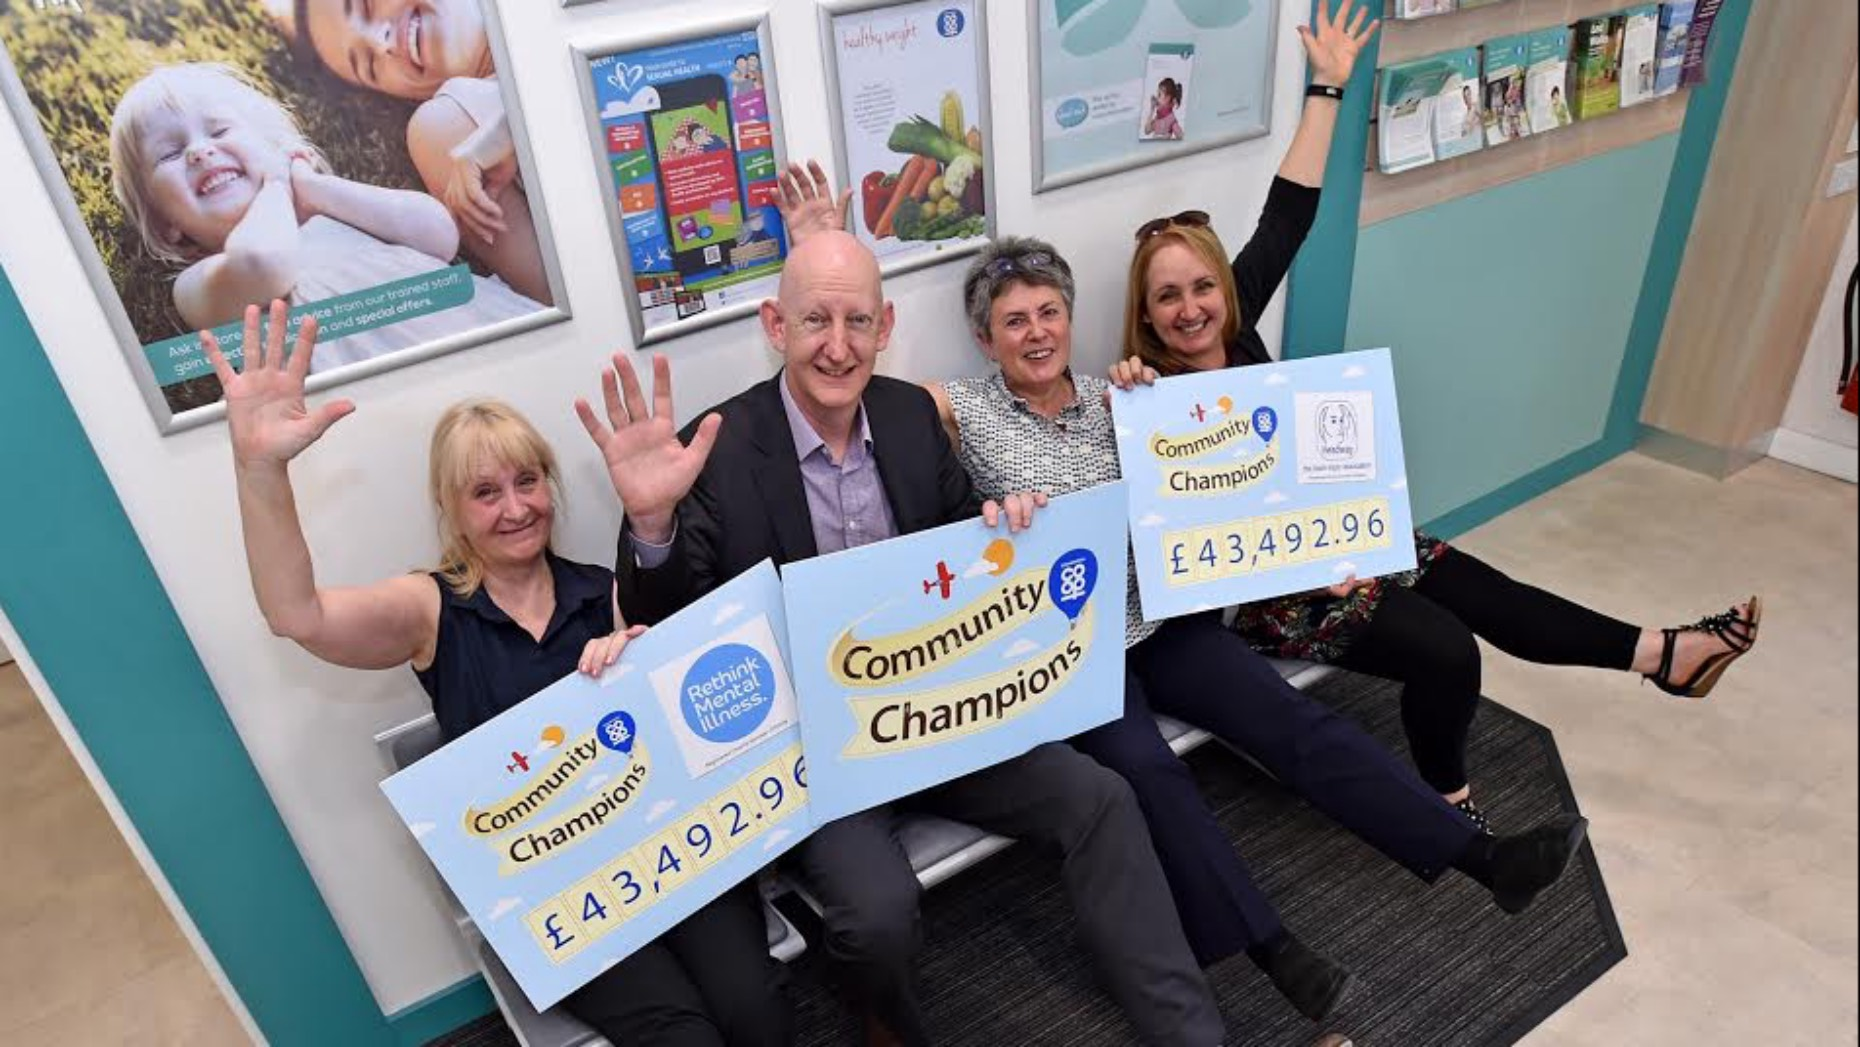 (Left to right) Rethink's Helen Doyle, Lincolnshire Co-op Head of Pharmacy Alastair Farquhar, Headway's Jane Reams and Lincolnshire Co-op's Anna-Marie Clarke.